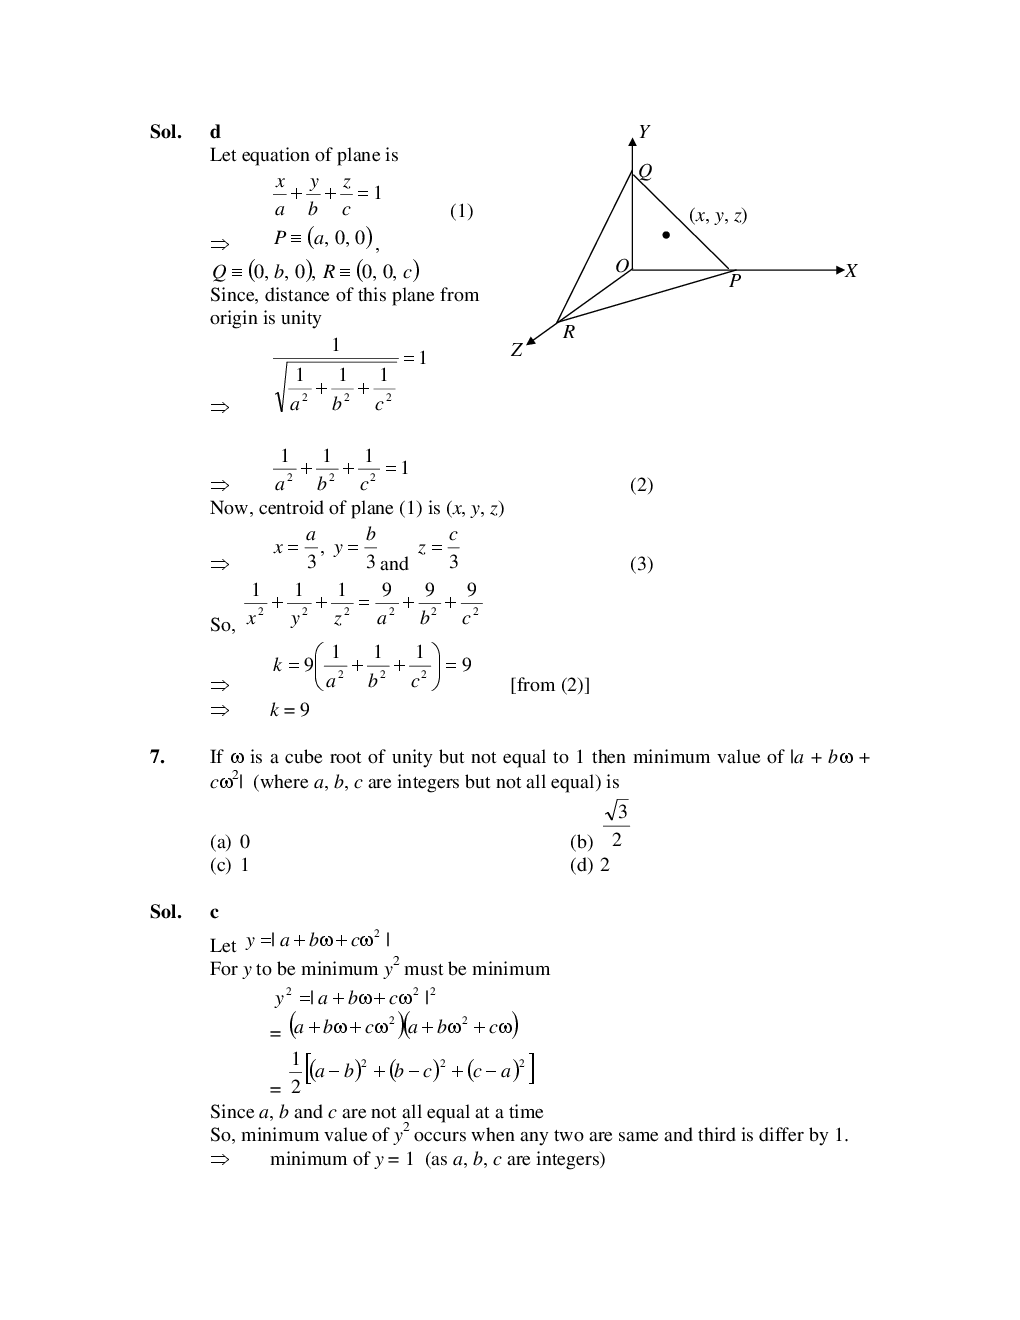 IIT-JEE Screening Solved Question Papers (Physics,Chemistry,Maths) 2004-2005 - Page 5